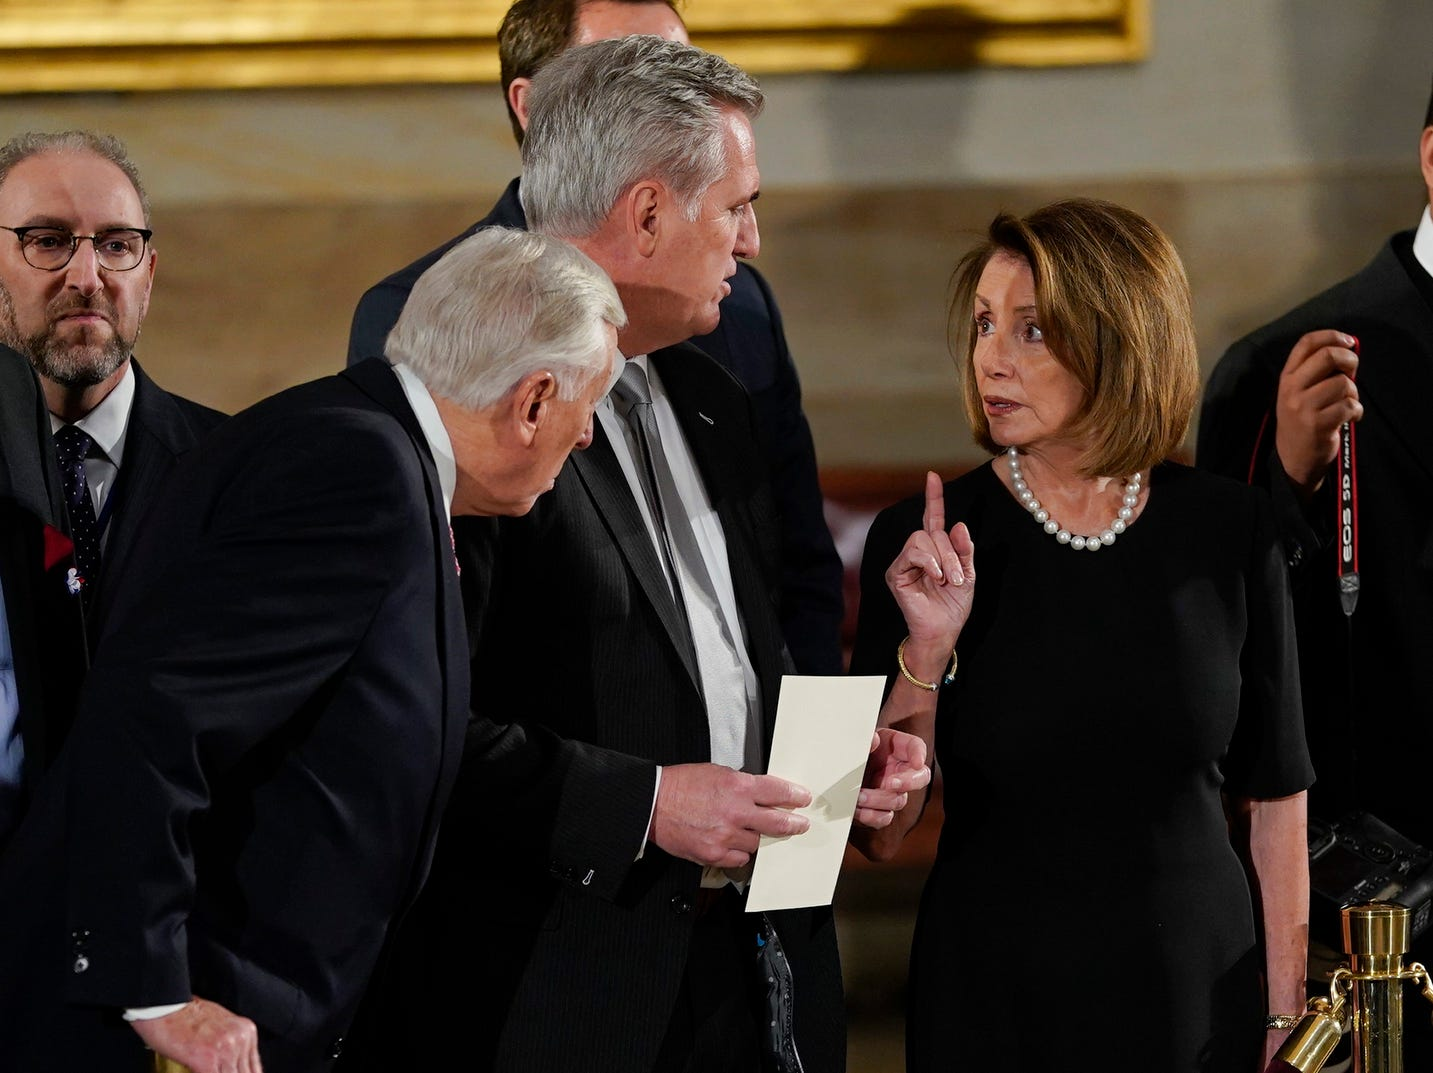 House Minority Leader Nancy Pelosi of California, right, talks with House Majority Leader Kevin McCarthy of California, center, and House Minority Whip Steny Hoyer, D-Md., left, as they arrive to attend services for former US President George H.W. Bush.